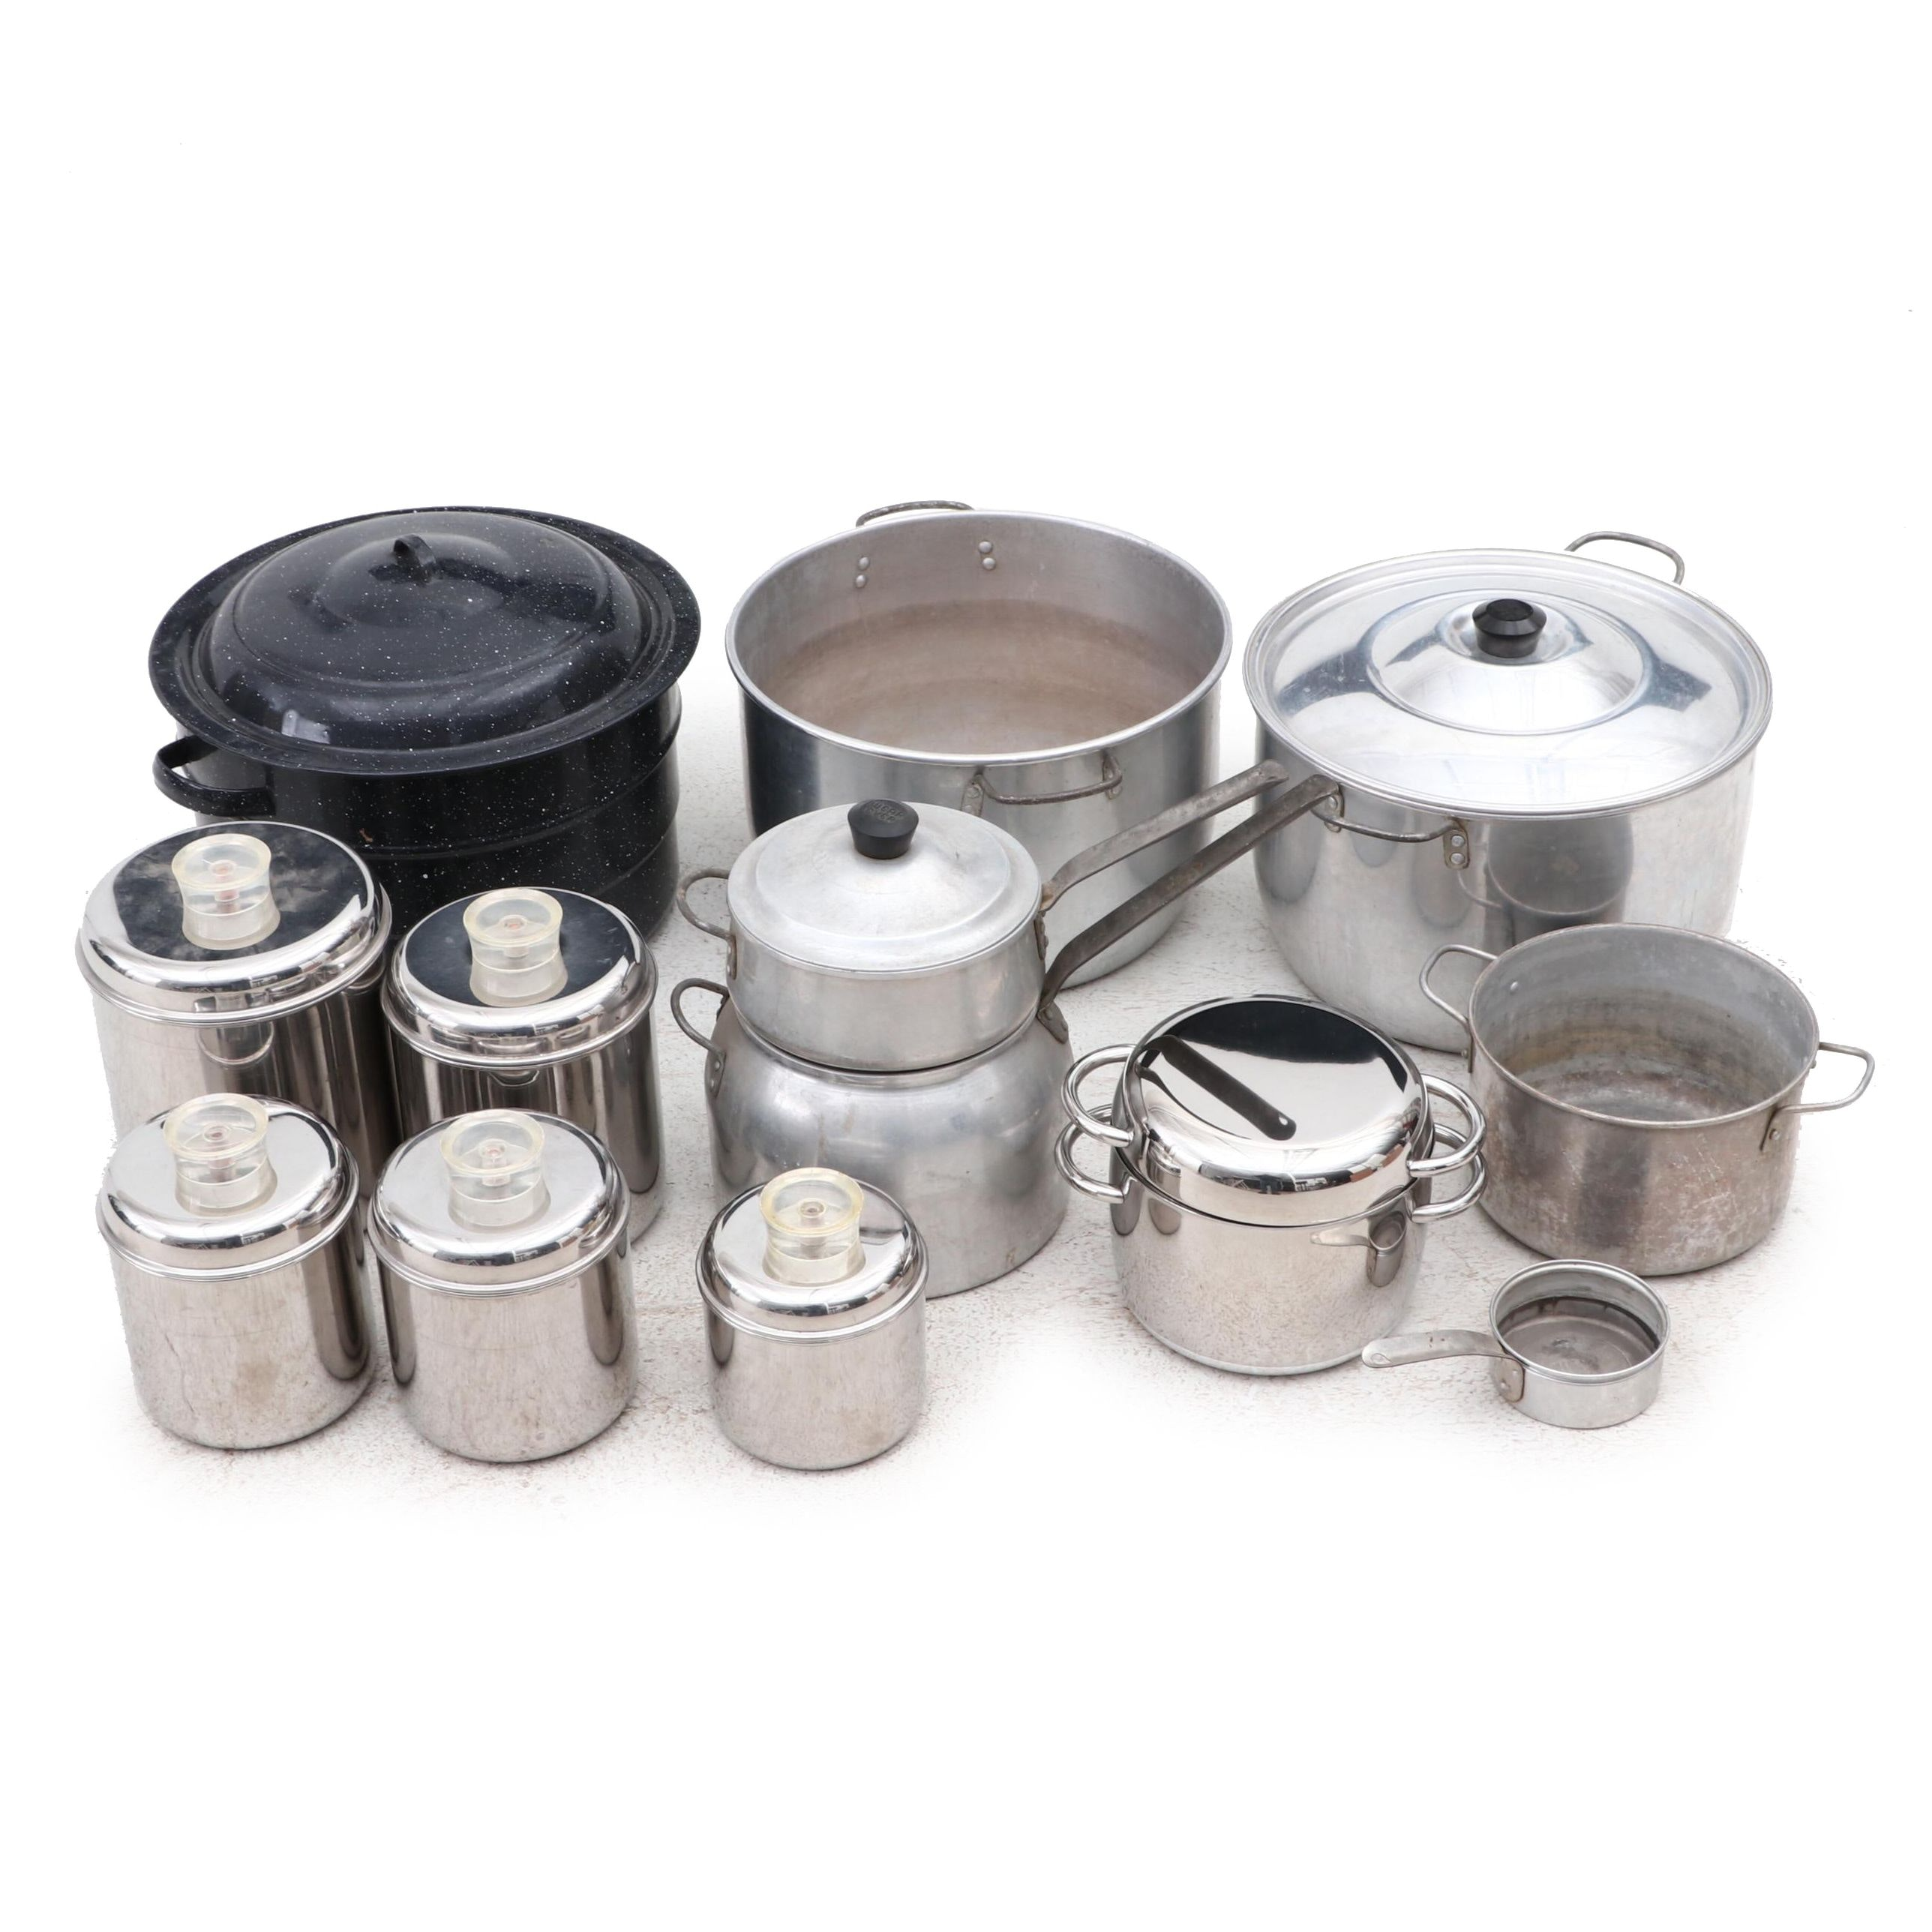 Stock Pots, Double Boilers, Sauce Pot and Lidded Storage Canisters